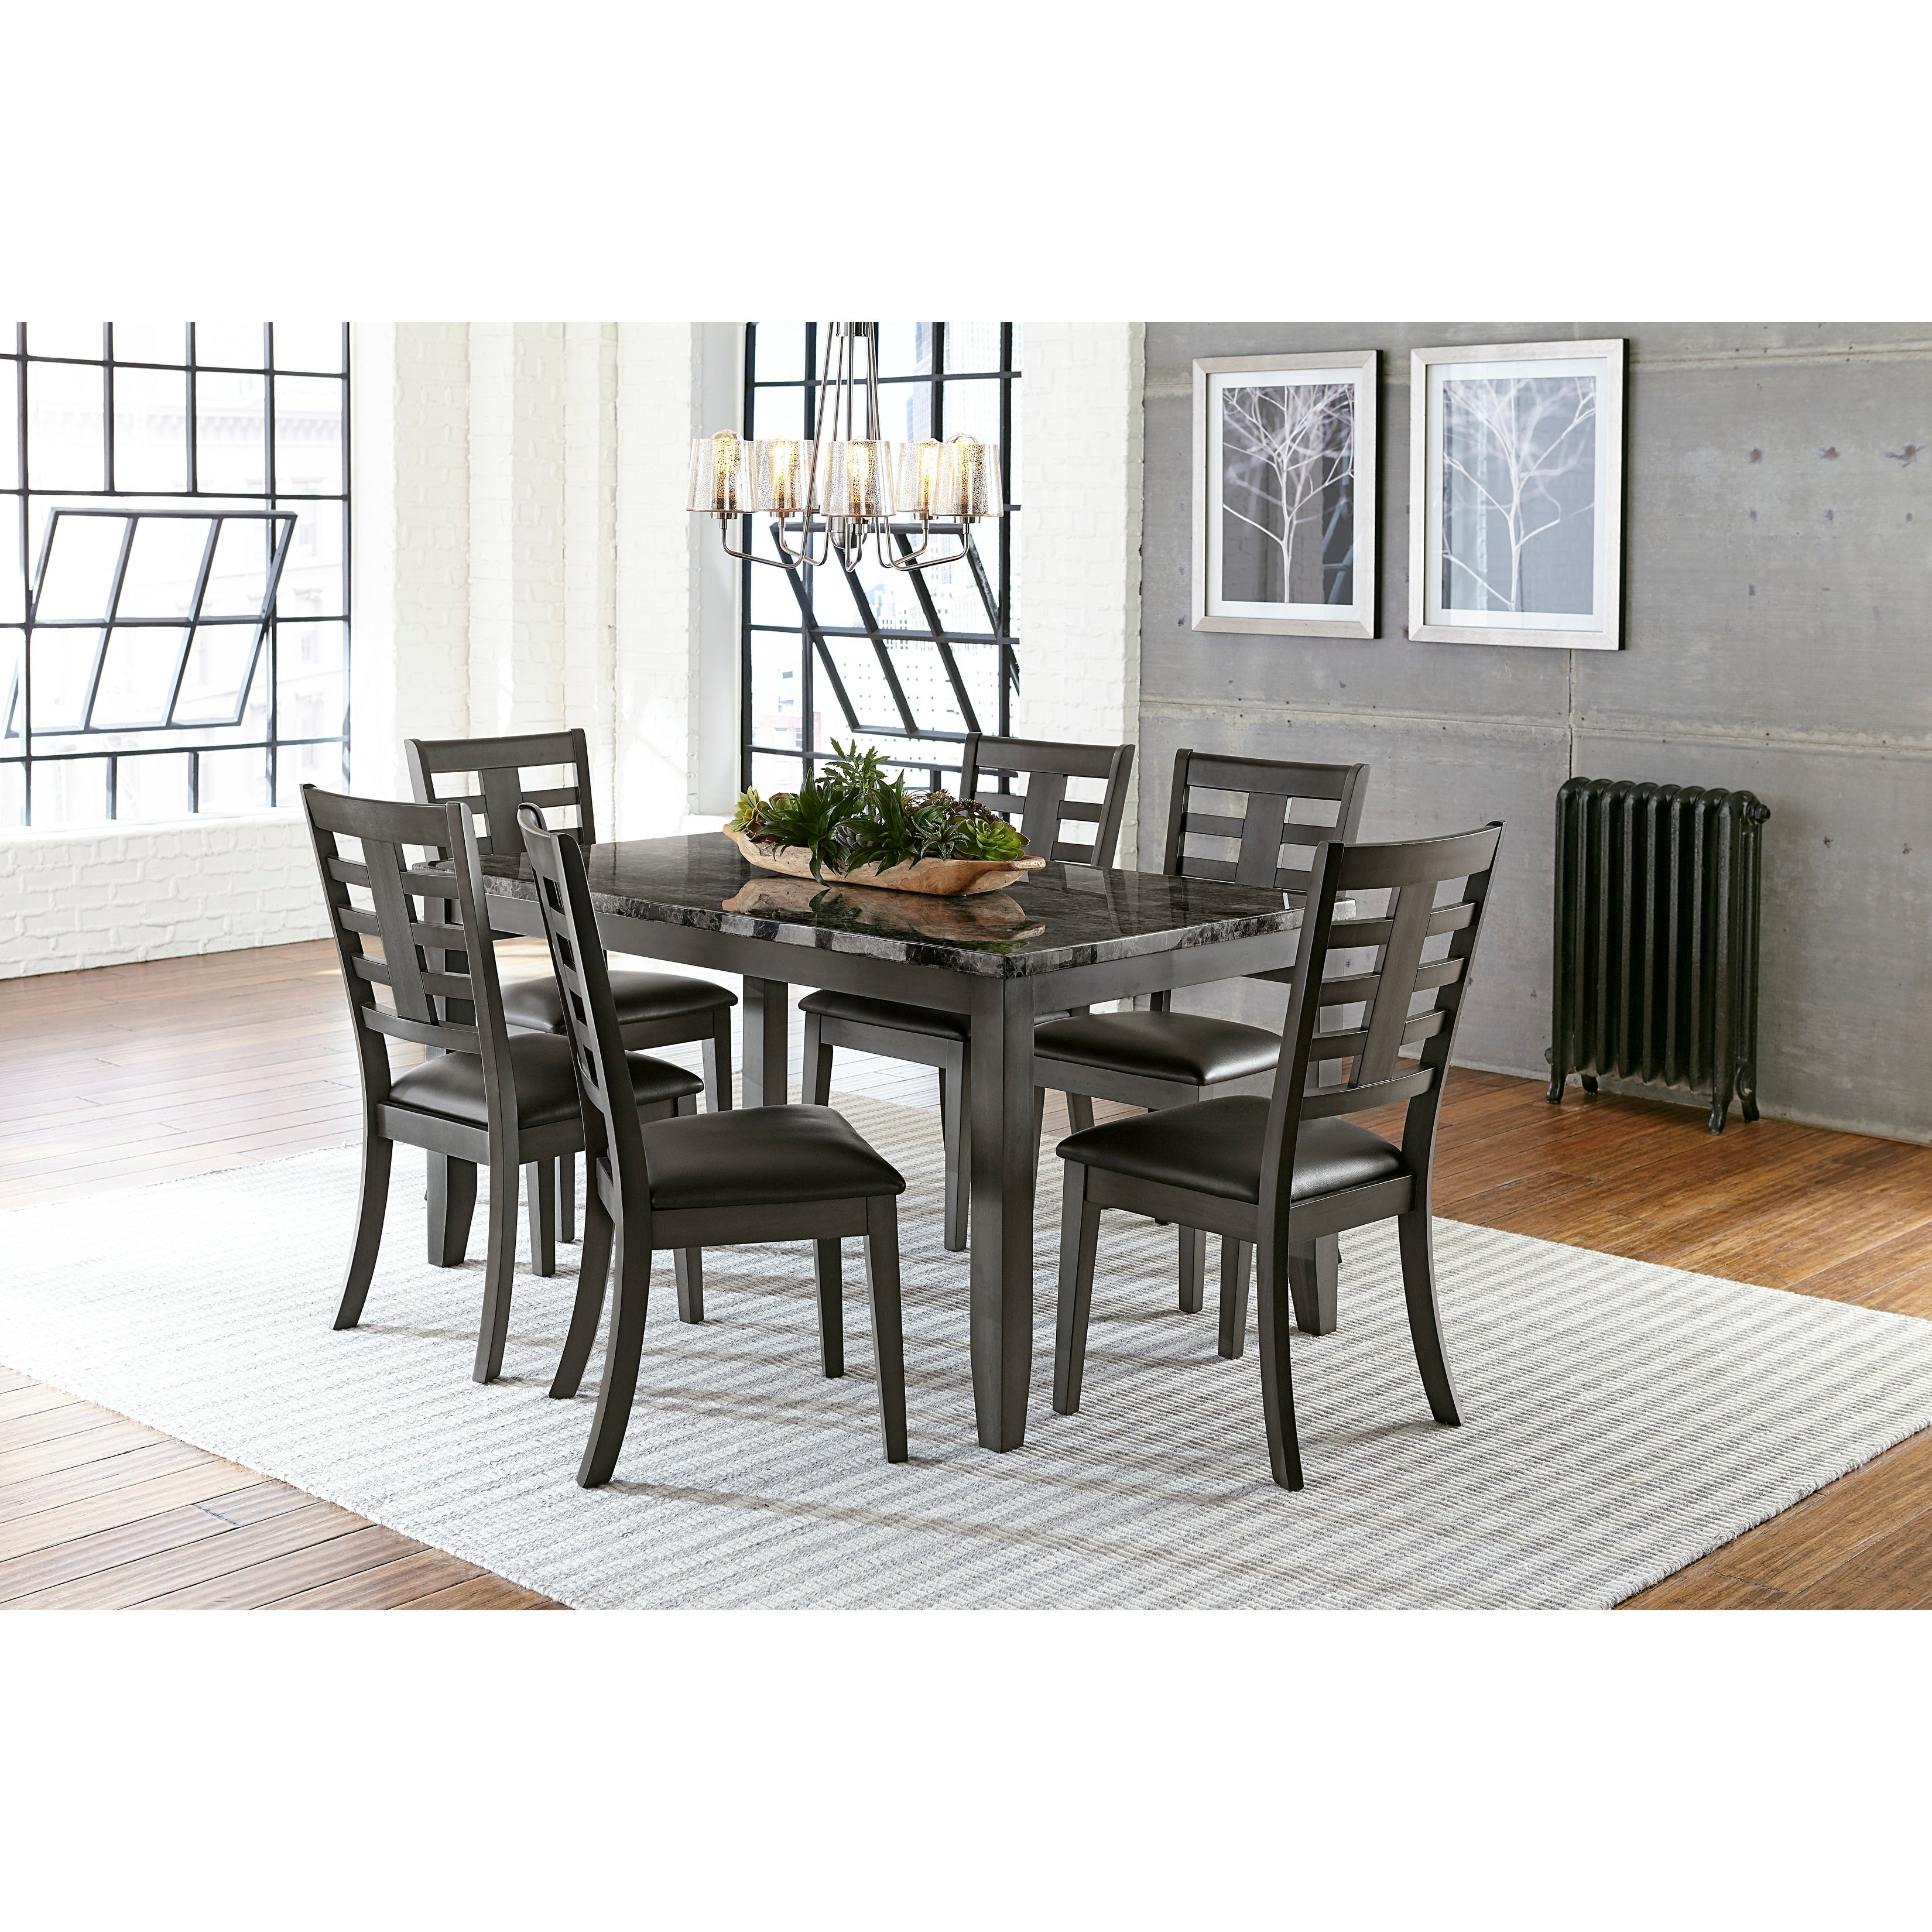 Standard Furniture Canaan 7 Piece Dining Table Set Black On Sale Overstock 26952096